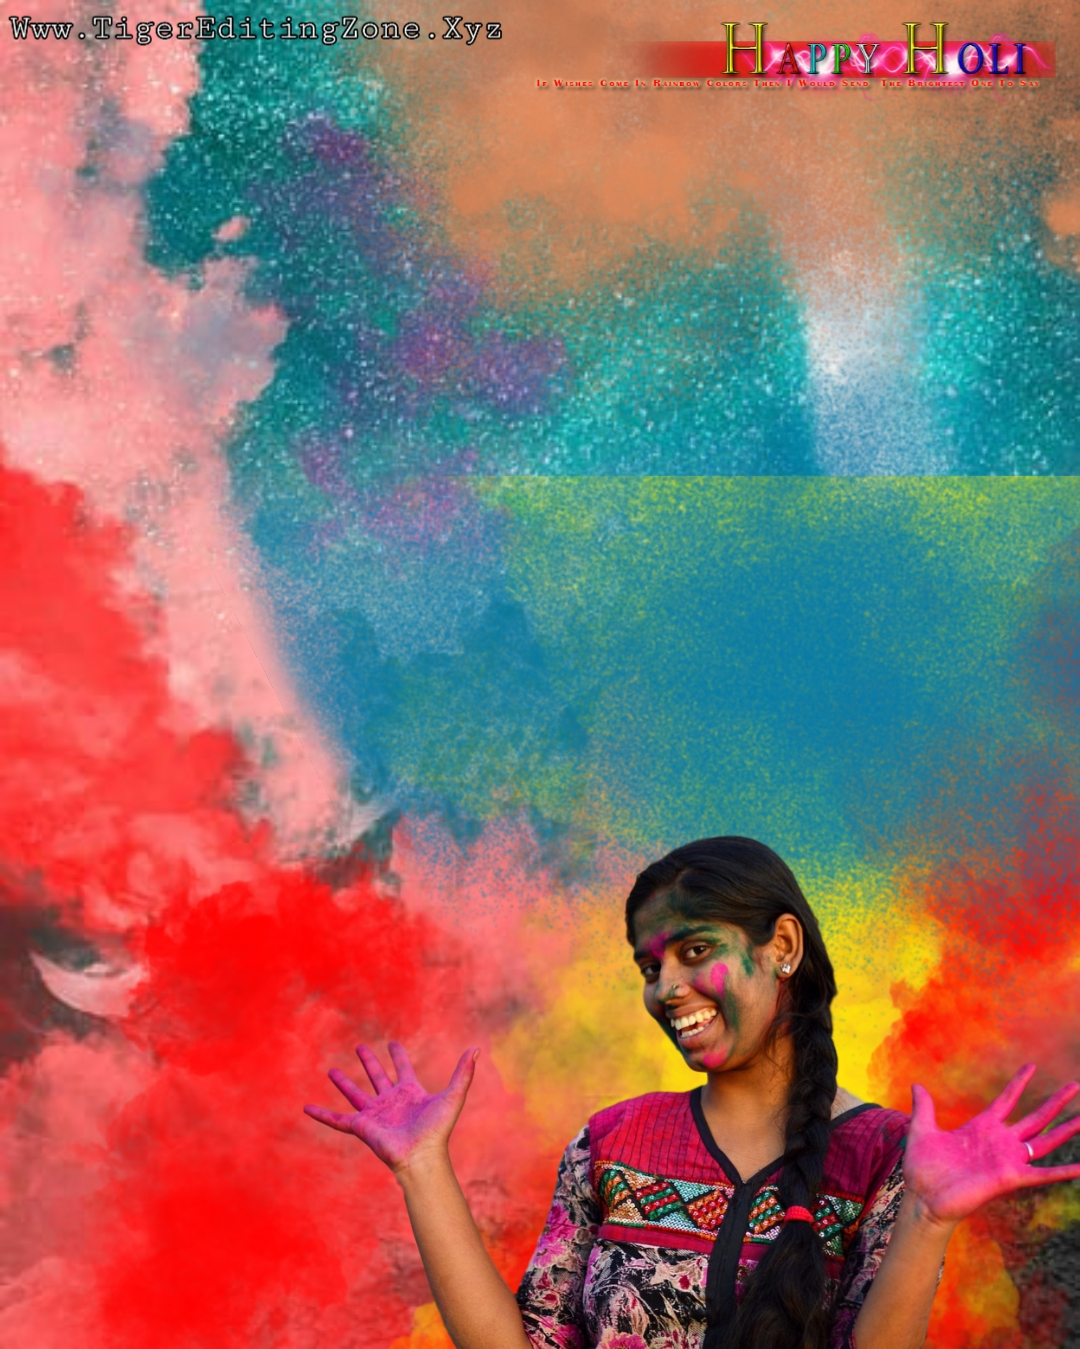 100+ Best Happy Holi Background Images HD for PicsArt | Happy Holi Photo Editing Background 2021